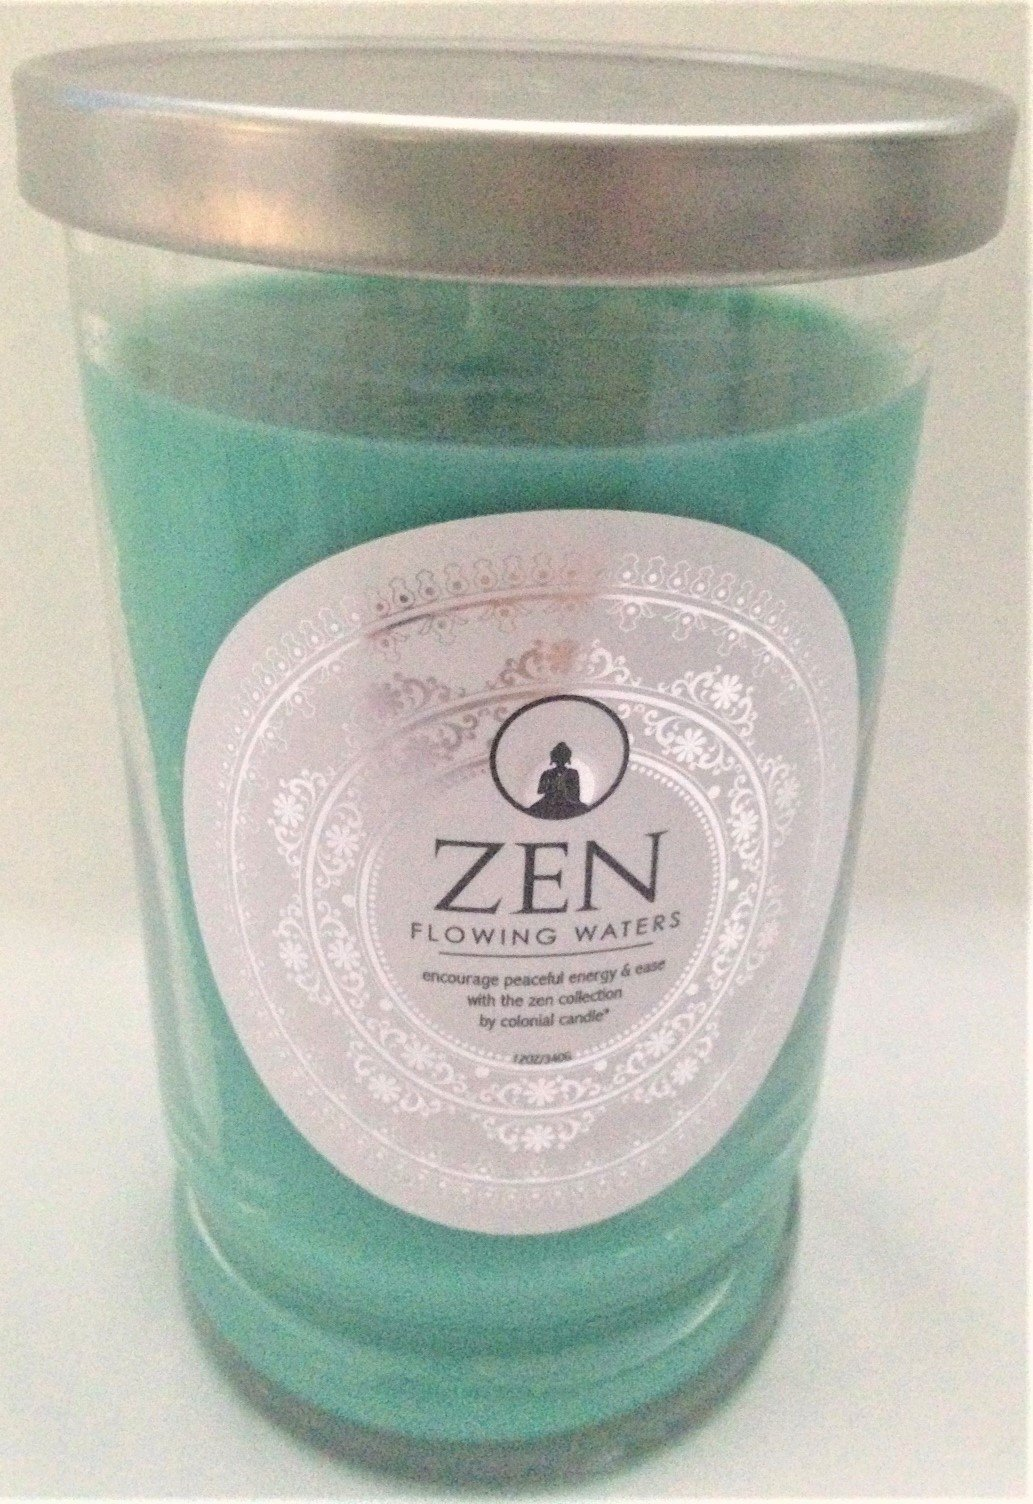 Zen Spa-Style Scented Candle ''FLOWING WATERS'' in Tumbler with Lid,12 oz.